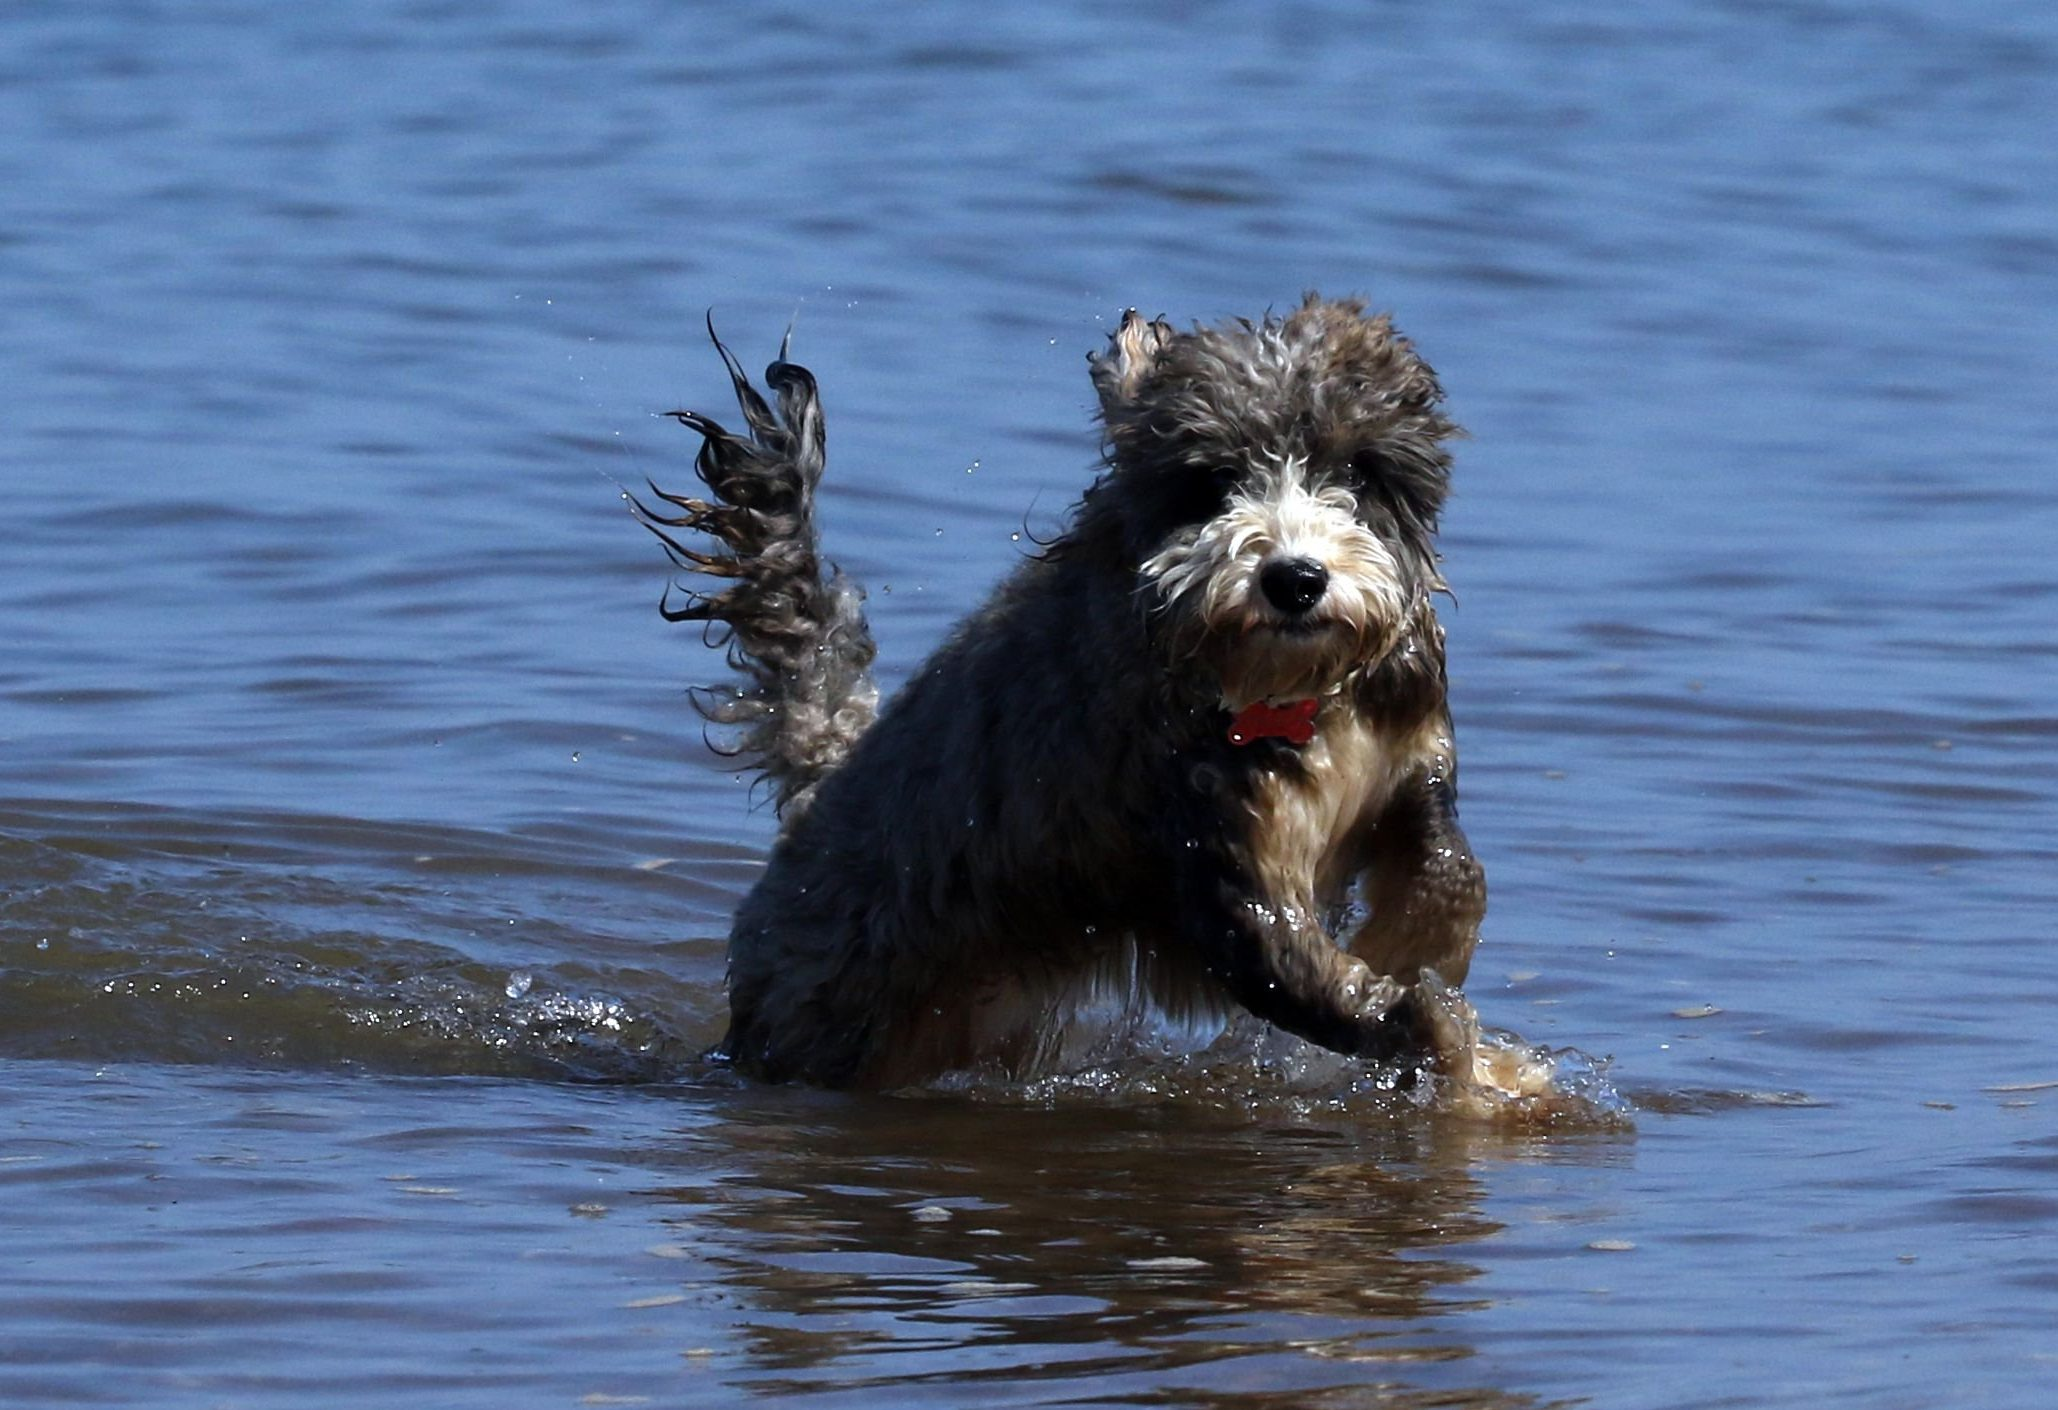 Mandatory Credit: Photo by Paul Marriott/REX/Shutterstock (9663439f) Cookie the cockapoo dog enjoys a dip in the sea during the hot weather at Hunstanton, Norfolk Seasonal weather, UK - 05 May 2018